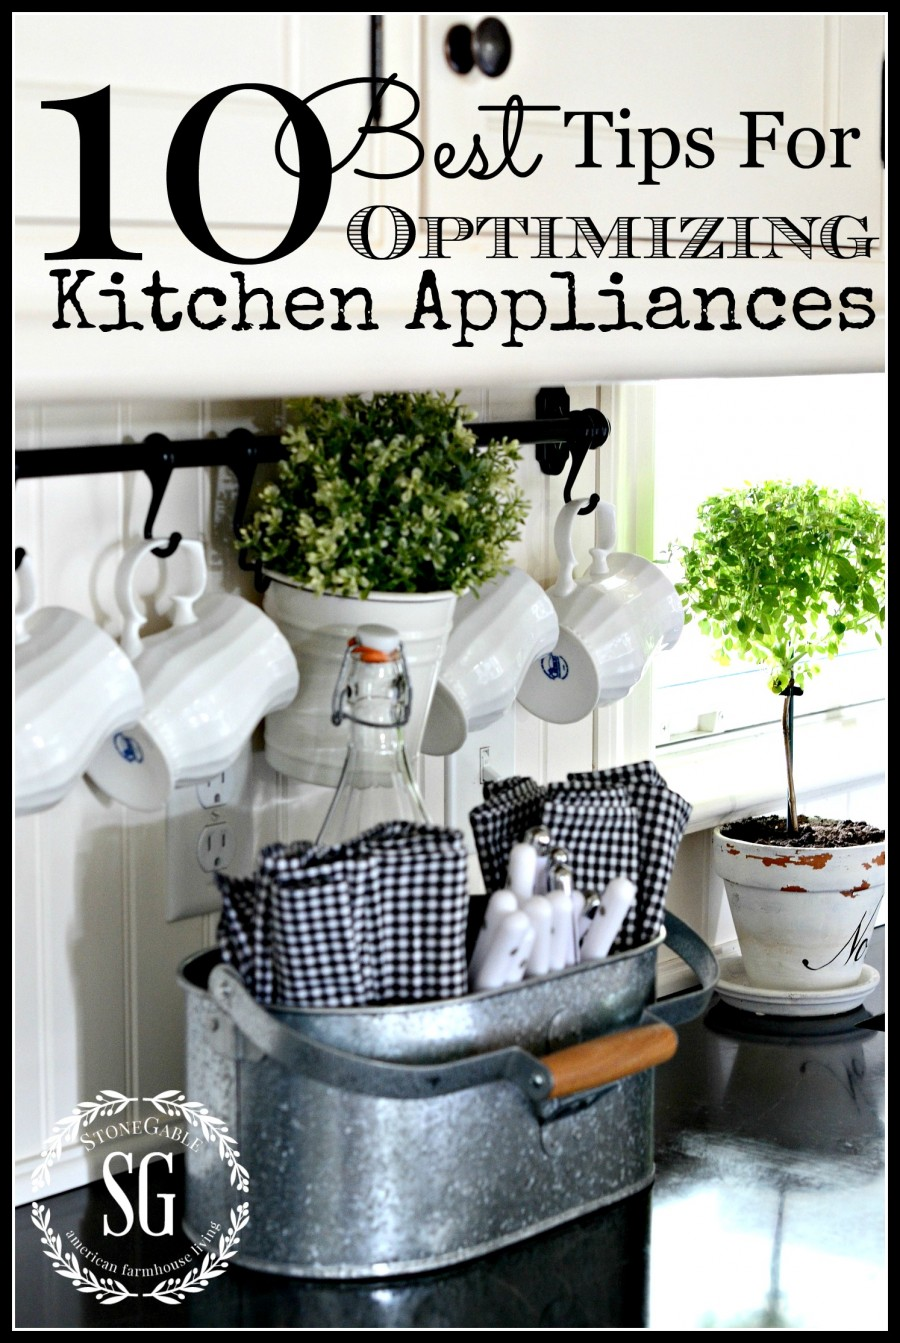 10 TIPS FOR OPTIMIZING APPLIANCES-Here are some great tips to to keep our appliances working at their best!